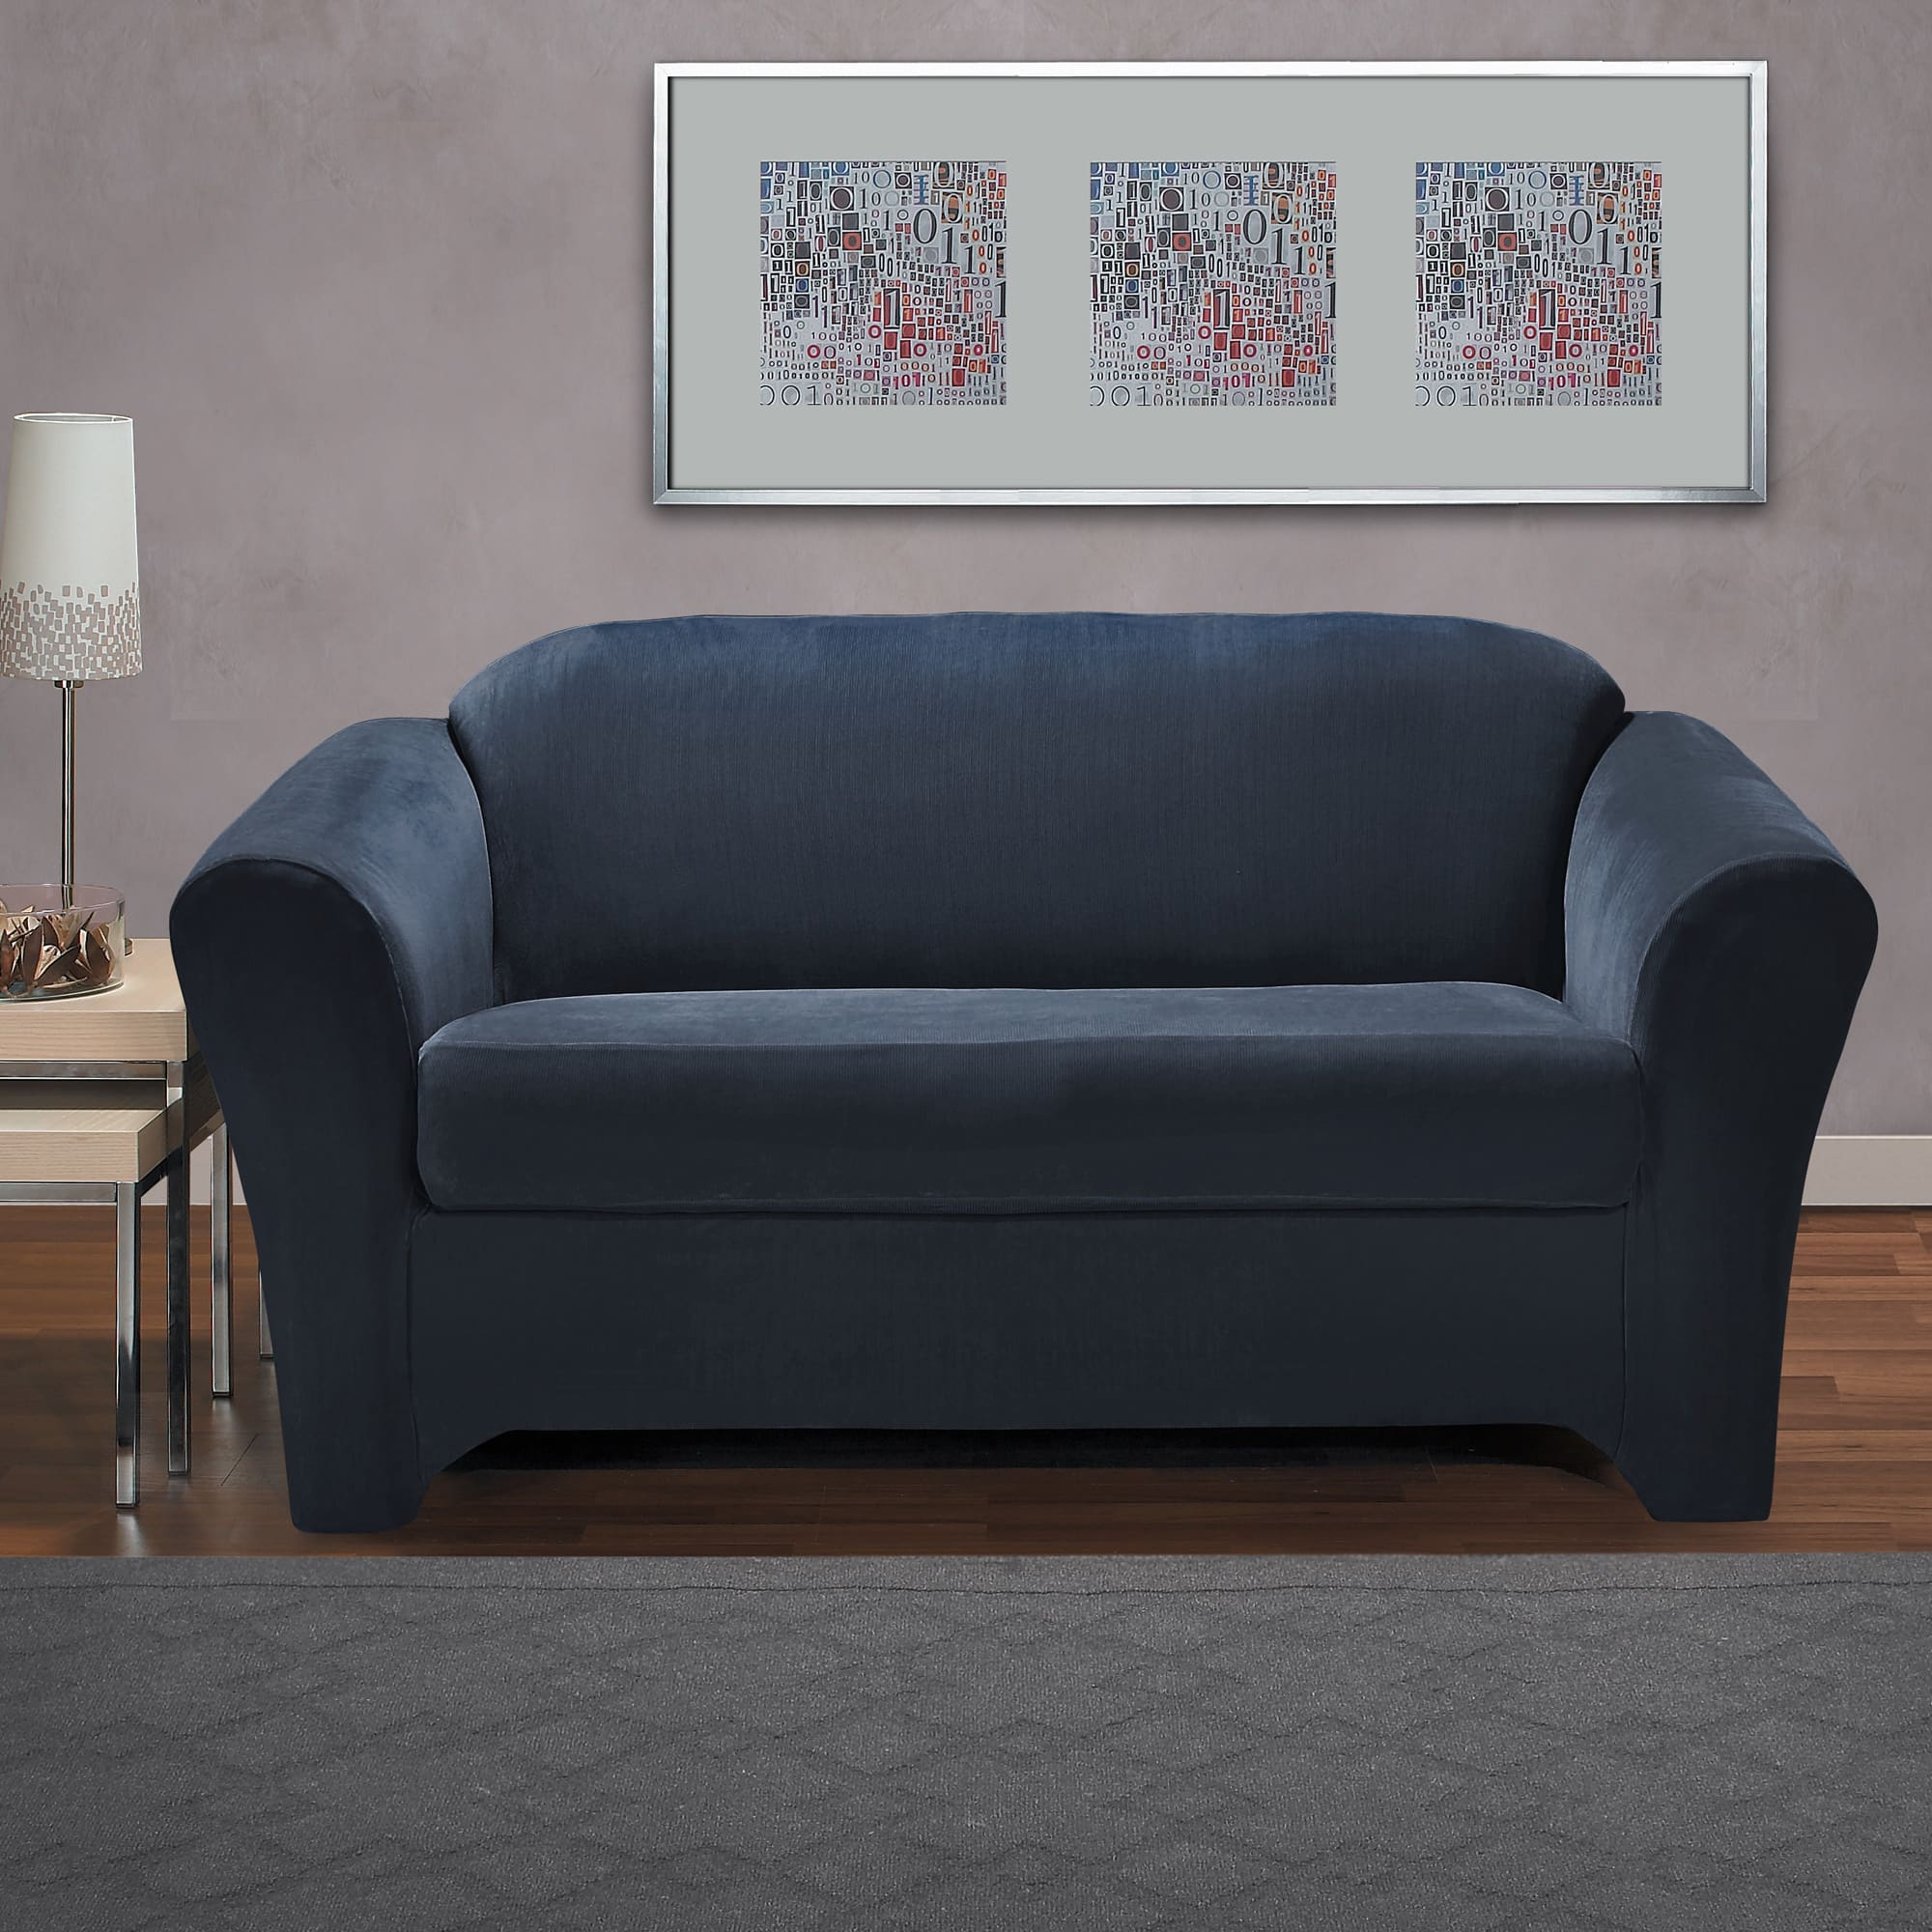 Loveseat Covers Slipcovers For Less